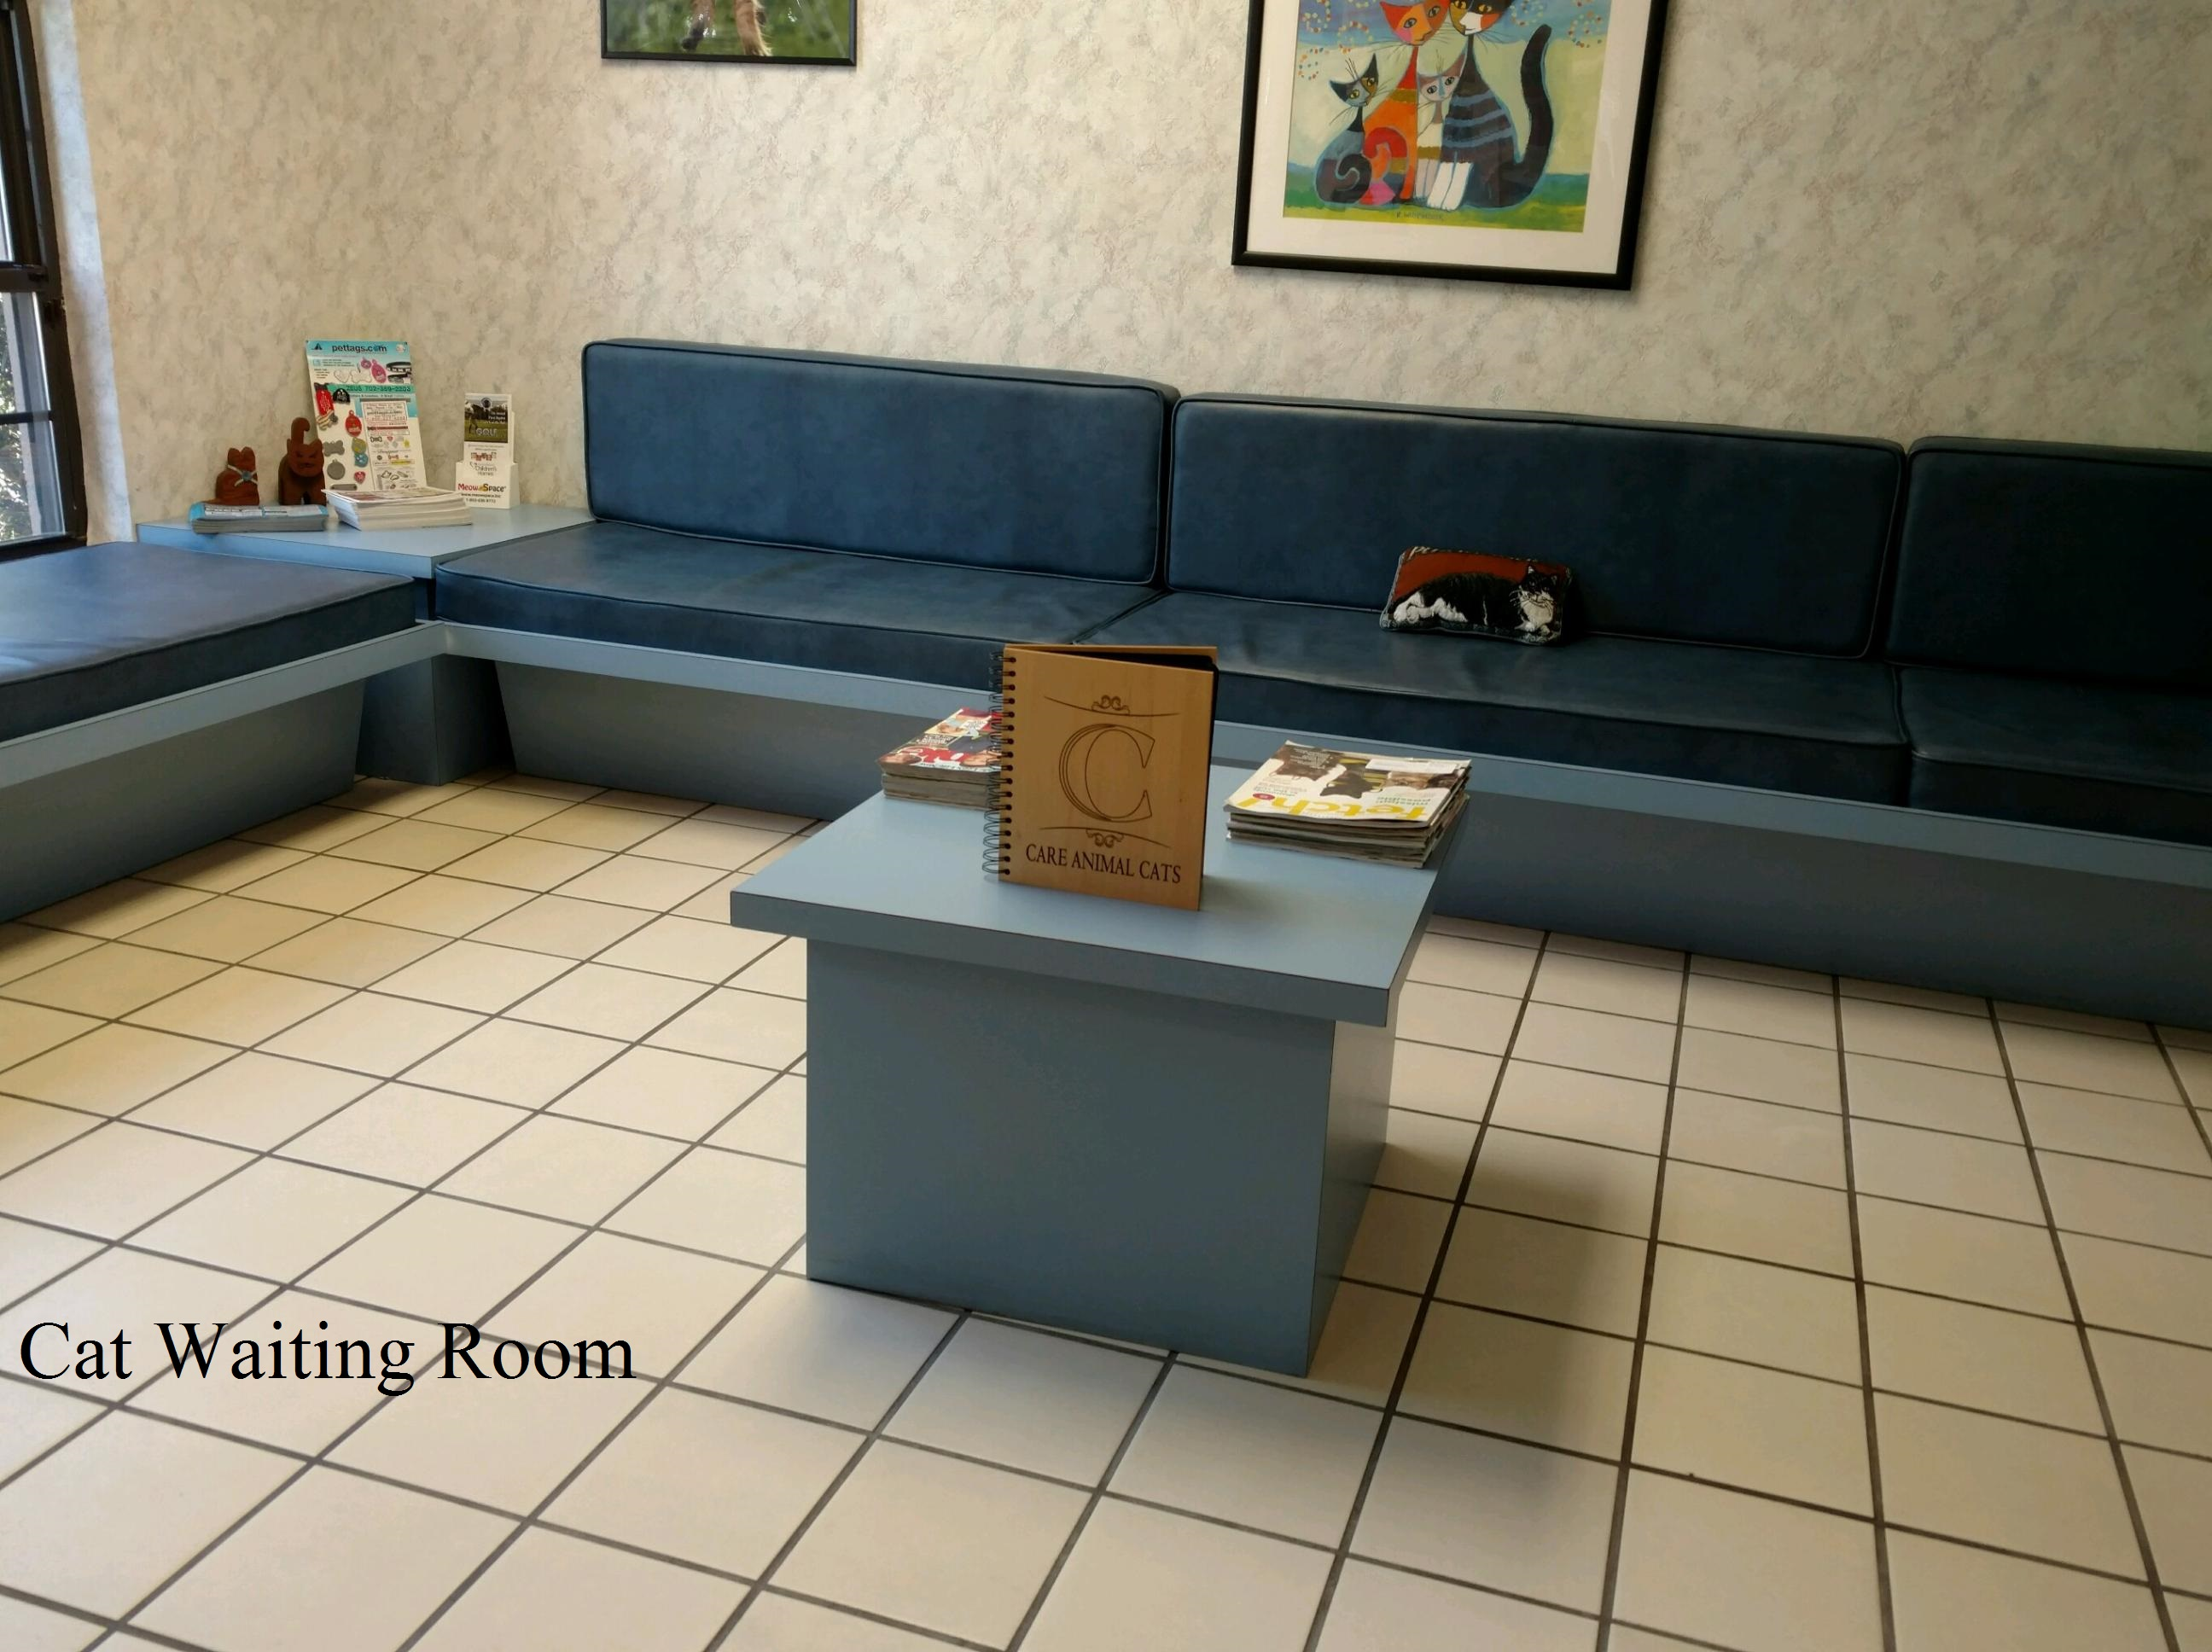 CAC CAT WAITING ROOM